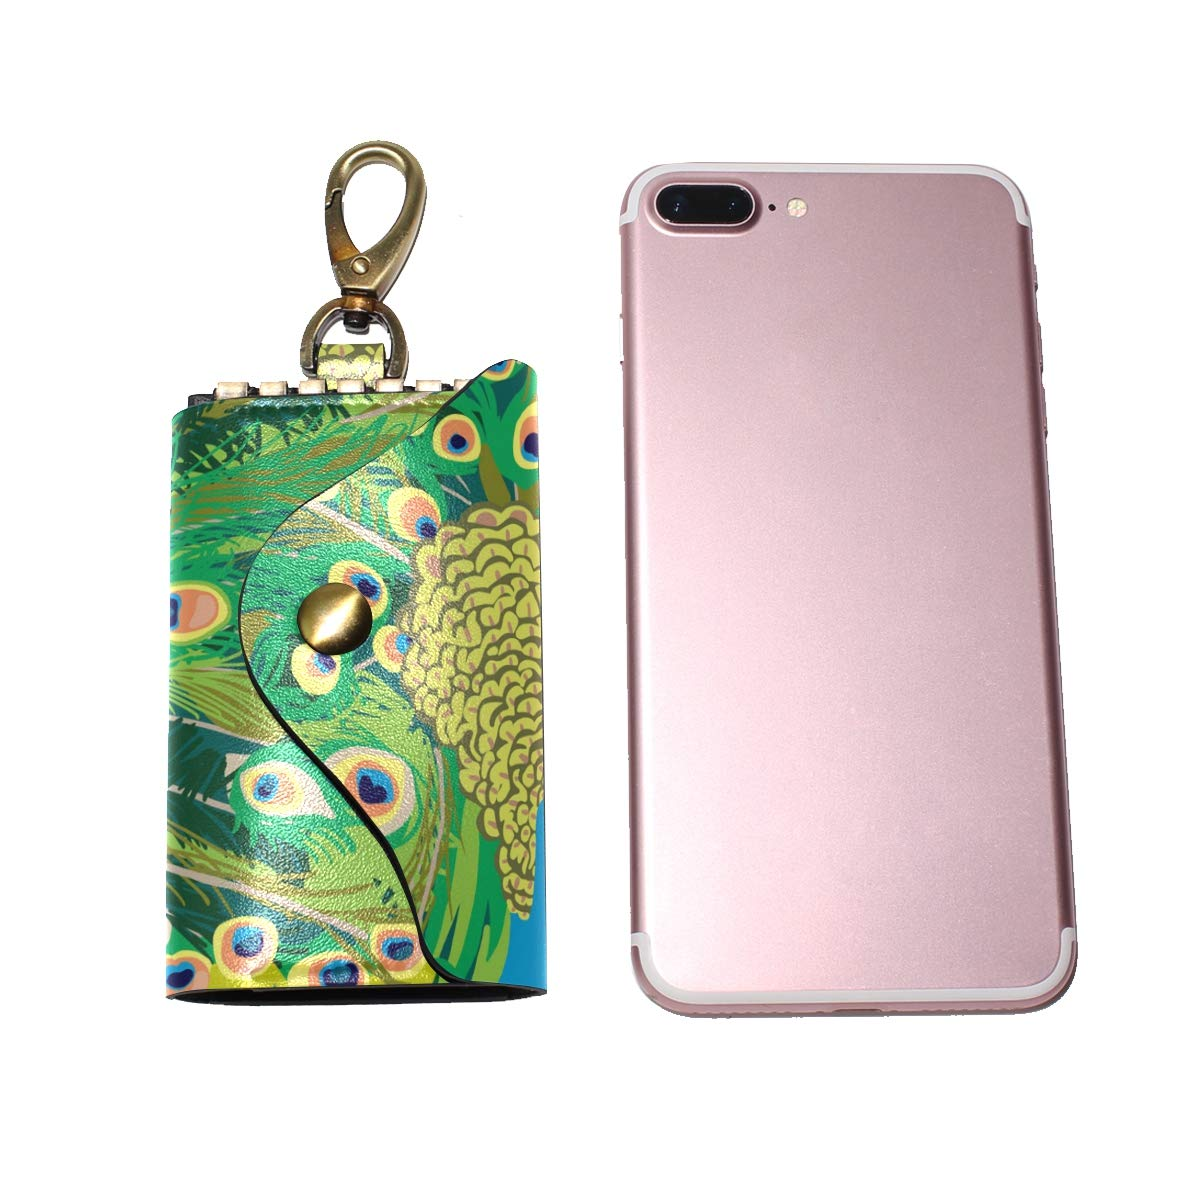 KEAKIA Peacock Painting Leather Key Case Wallets Tri-fold Key Holder Keychains with 6 Hooks 2 Slot Snap Closure for Men Women